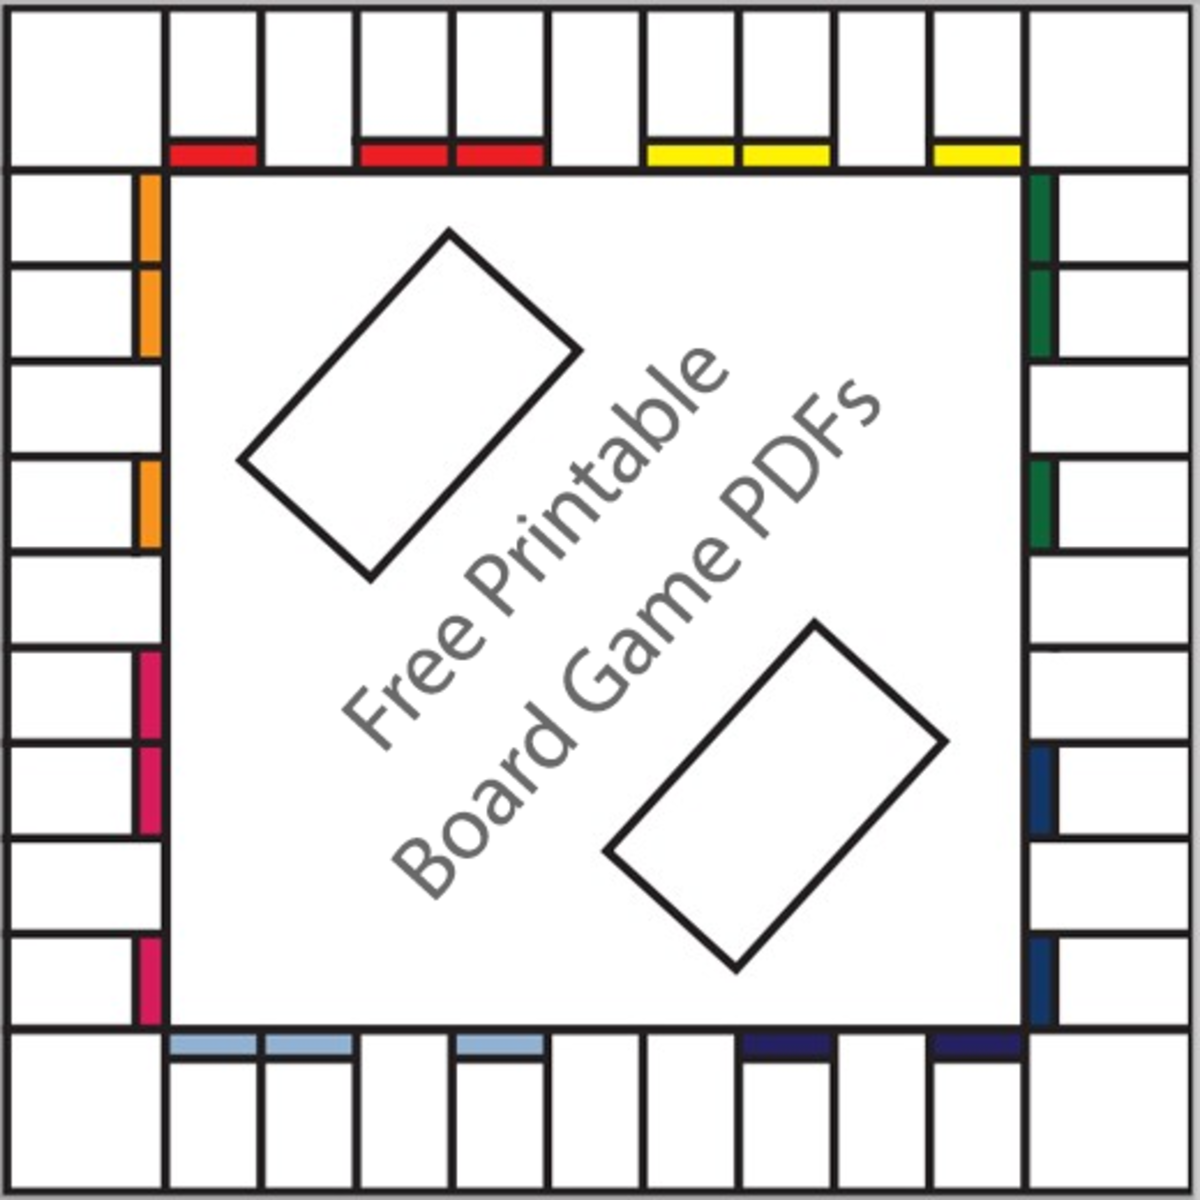 16 free printable board game templates hubpages for Blank scrabble board template